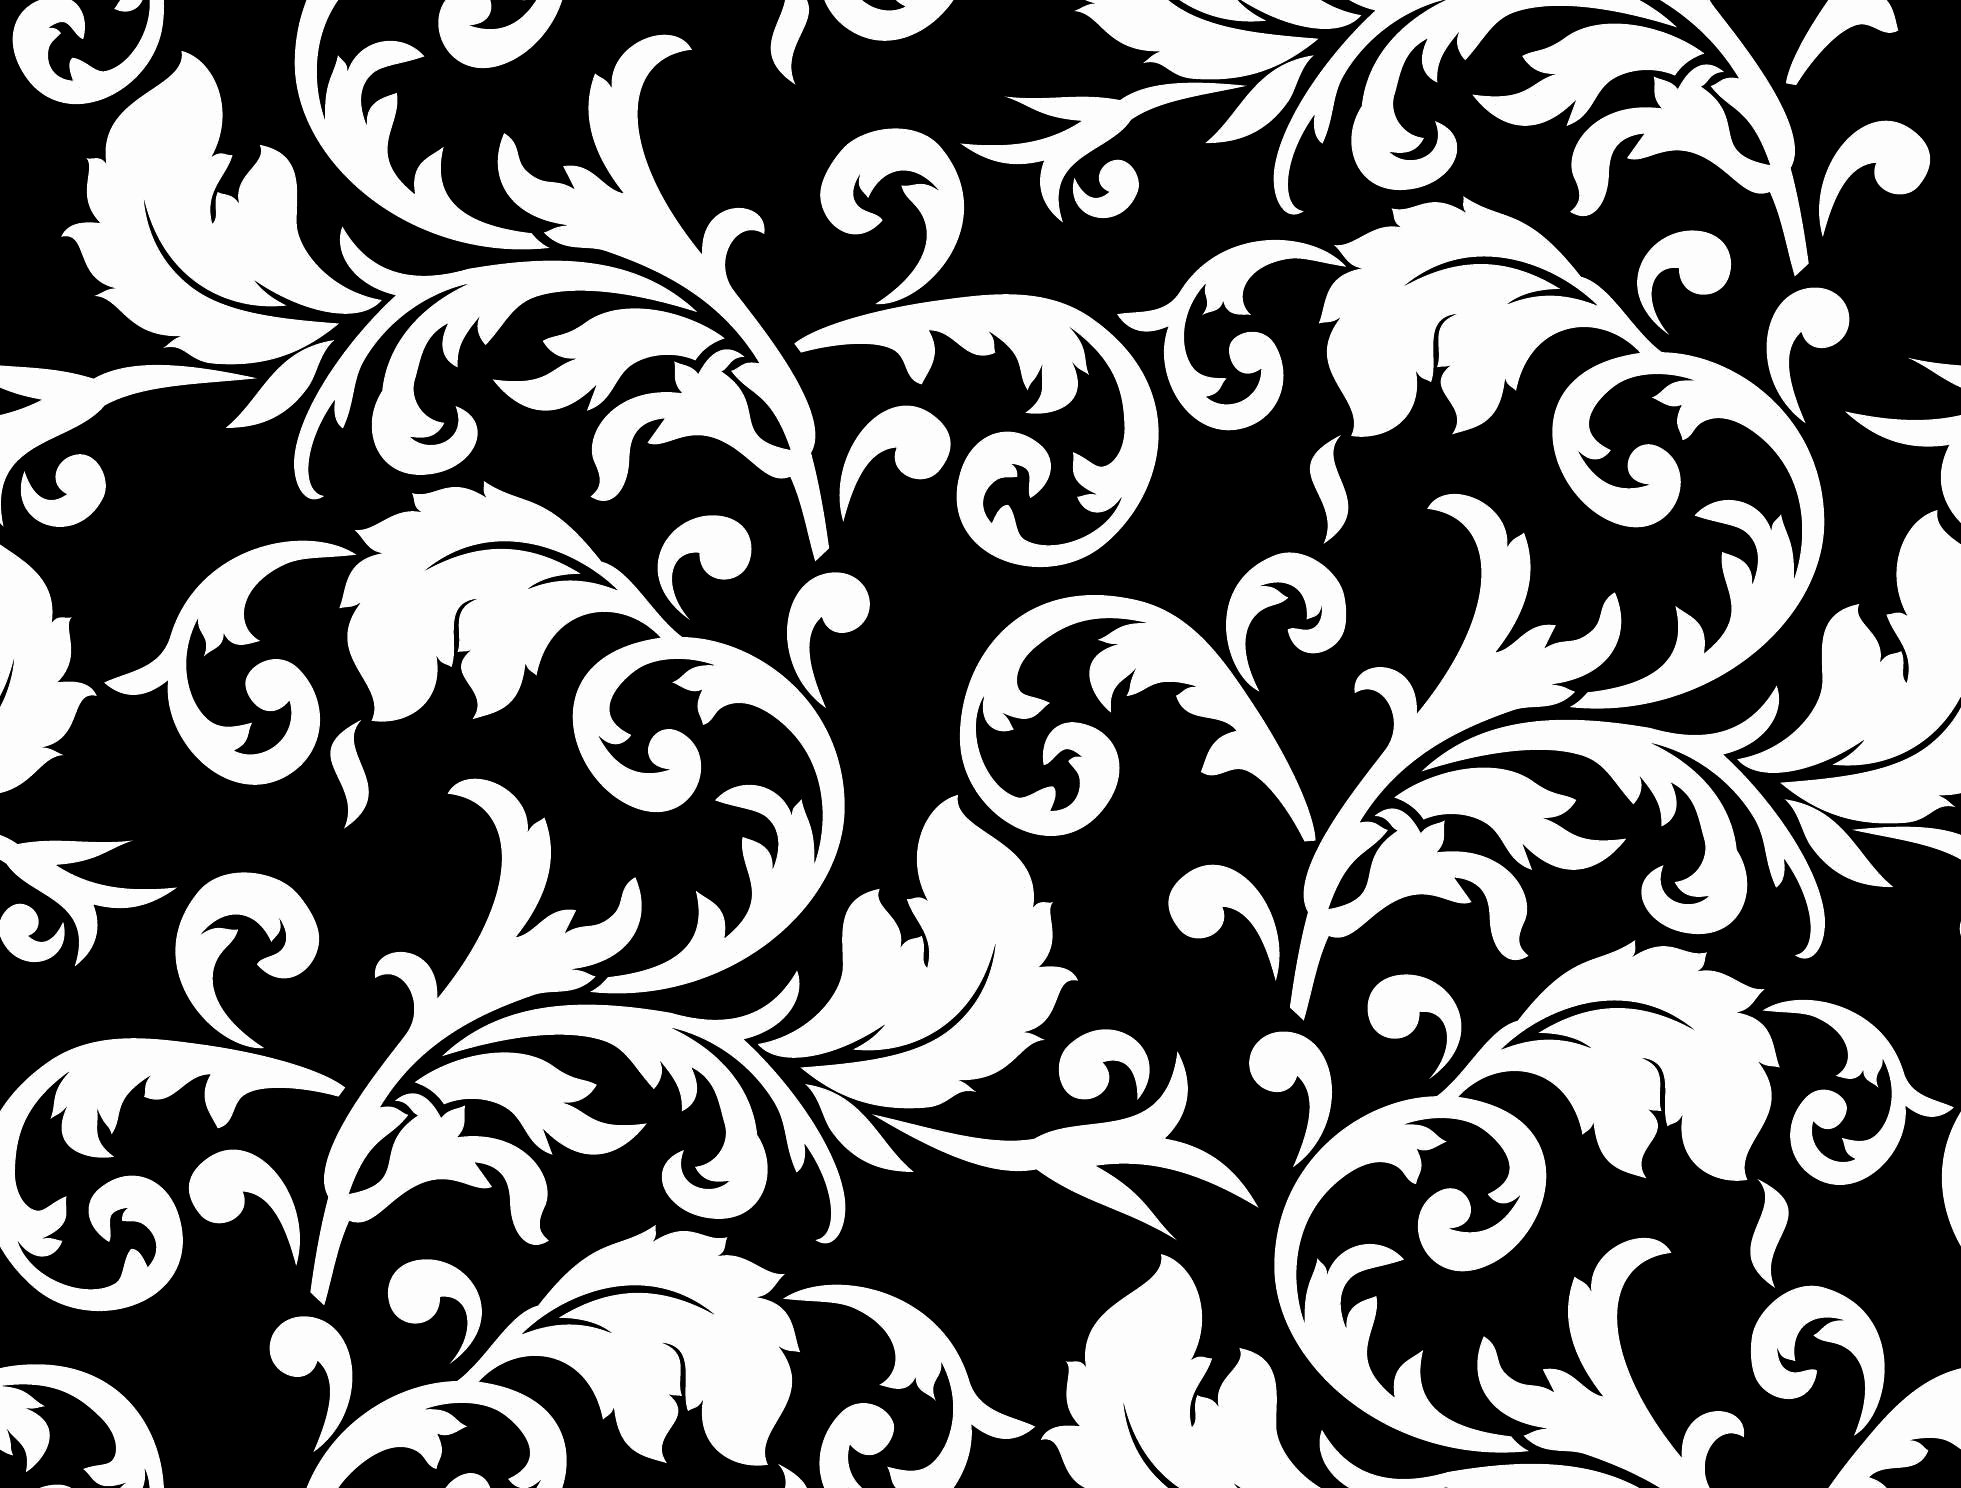 Black and White Pattern Best Of Black and White Floral Patterns Flower Patterns